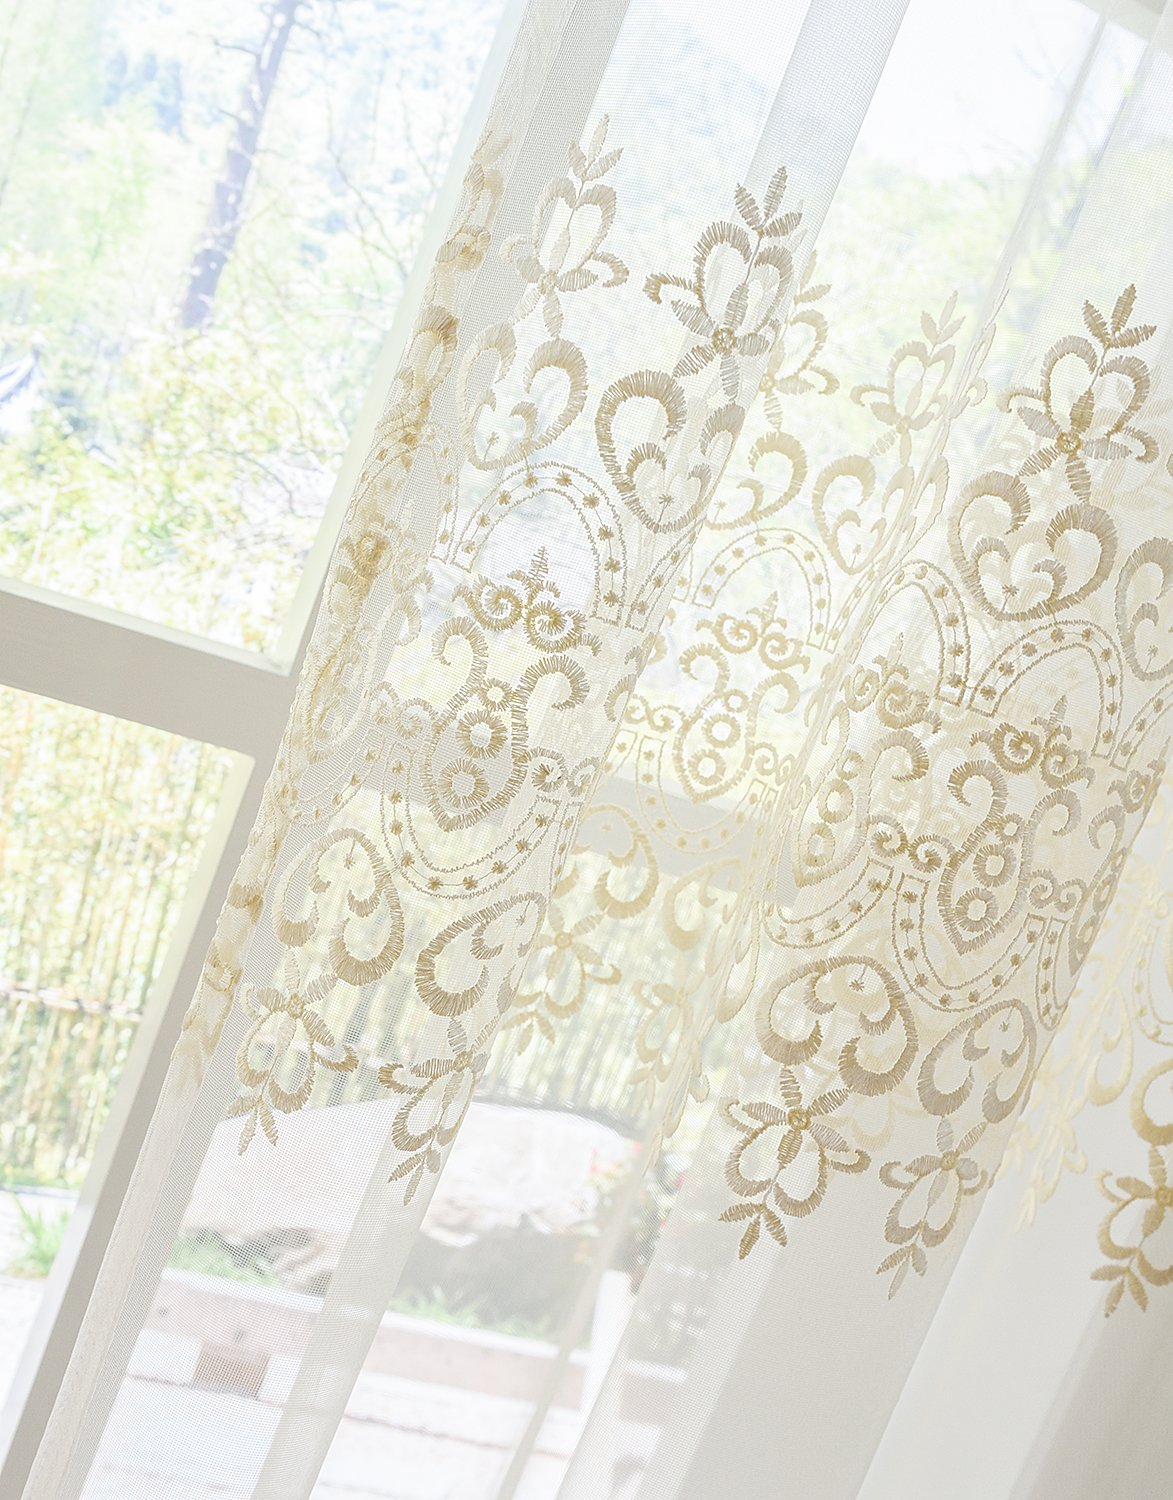 Aside Bside Sheer Curtains Tiny Arrow Embroidered Pattern Relaxed Casual Style Rod Pocket Top for Windows (1 Panel, W 52 x L 104 inch, White 18) -1281643521048518C1PGC by Aside Bside (Image #5)